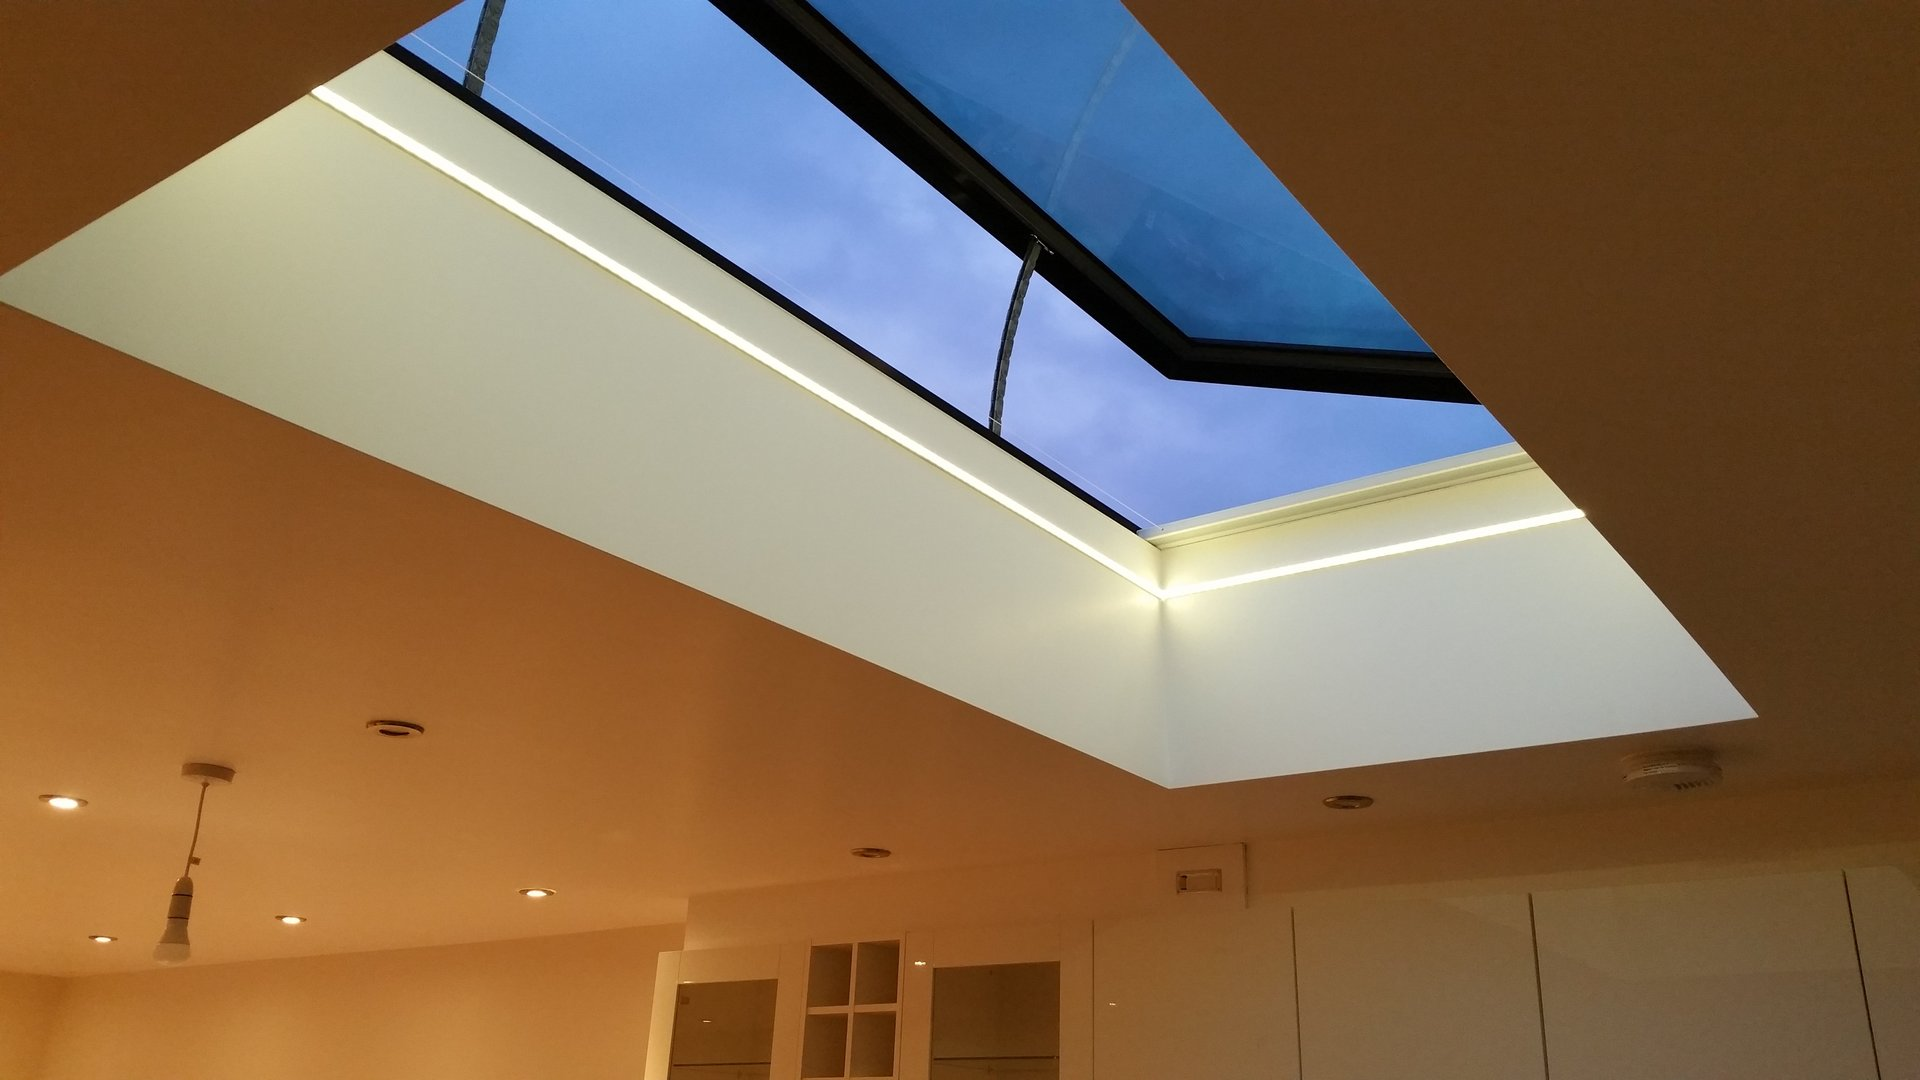 Electric opening rooflight installed by AJOB Electrical Ltd electrician in Leeds